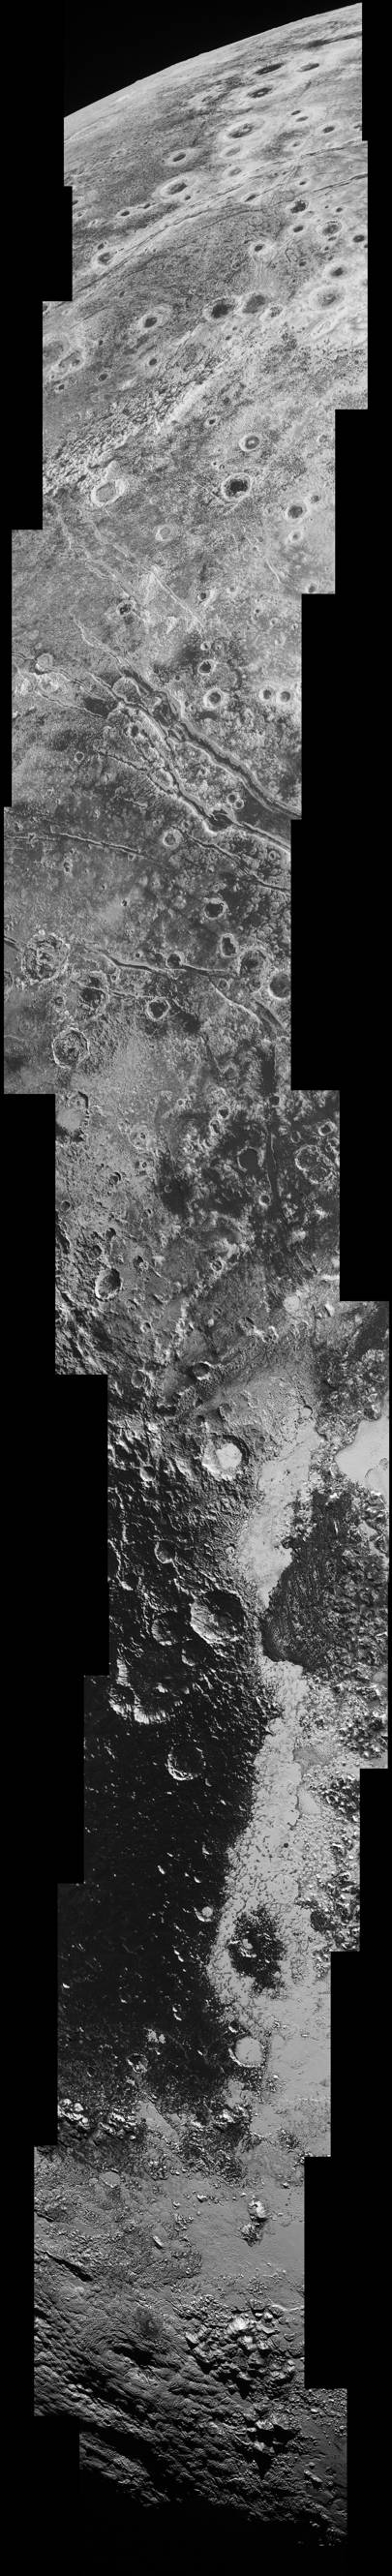 Huge new Pluto image shows potential ice volcano